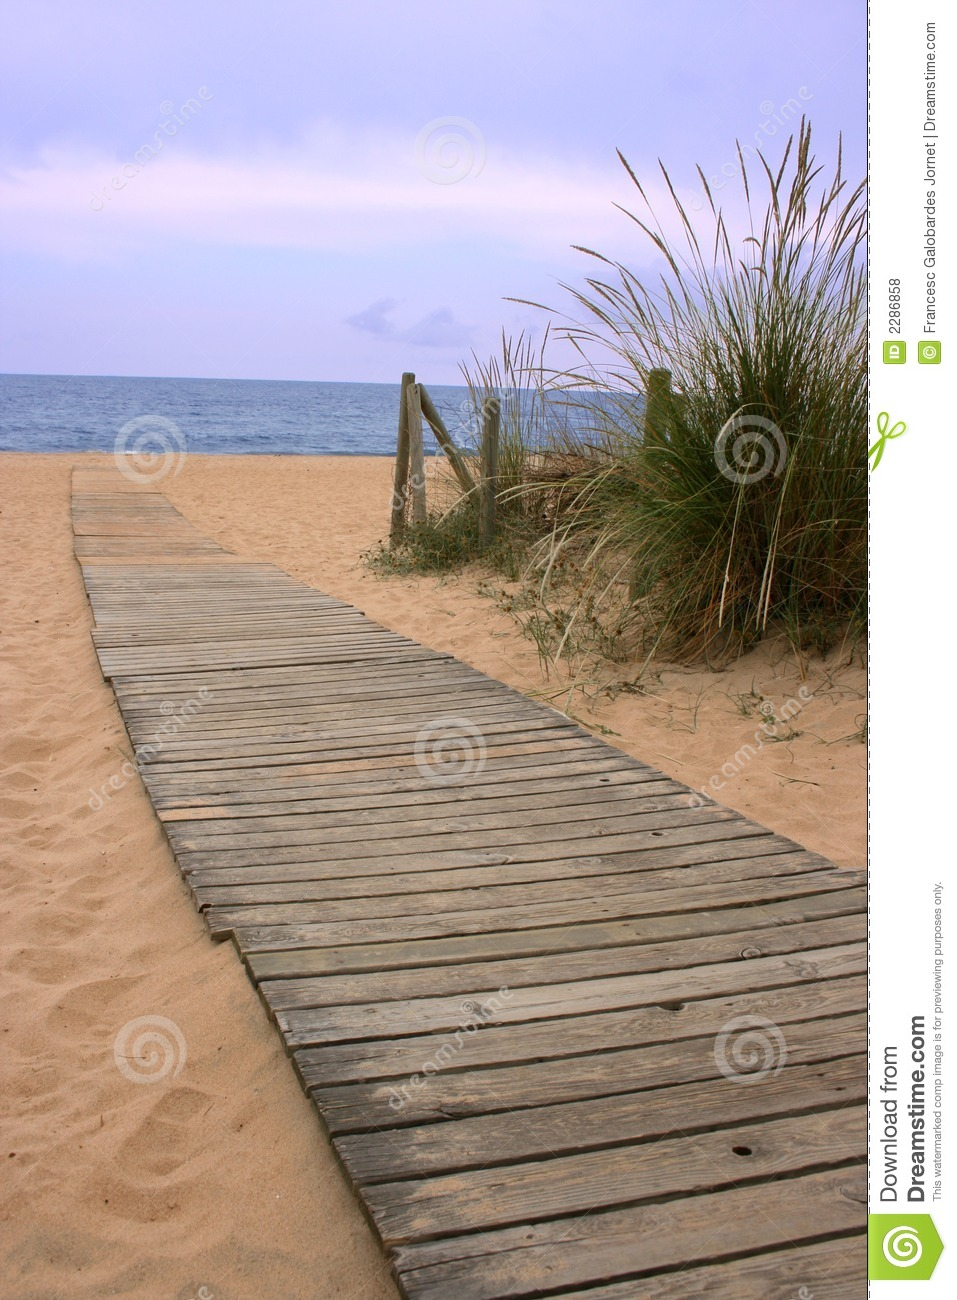 Wood Walkway To The Ocean Stock Photo Image Of Landscape